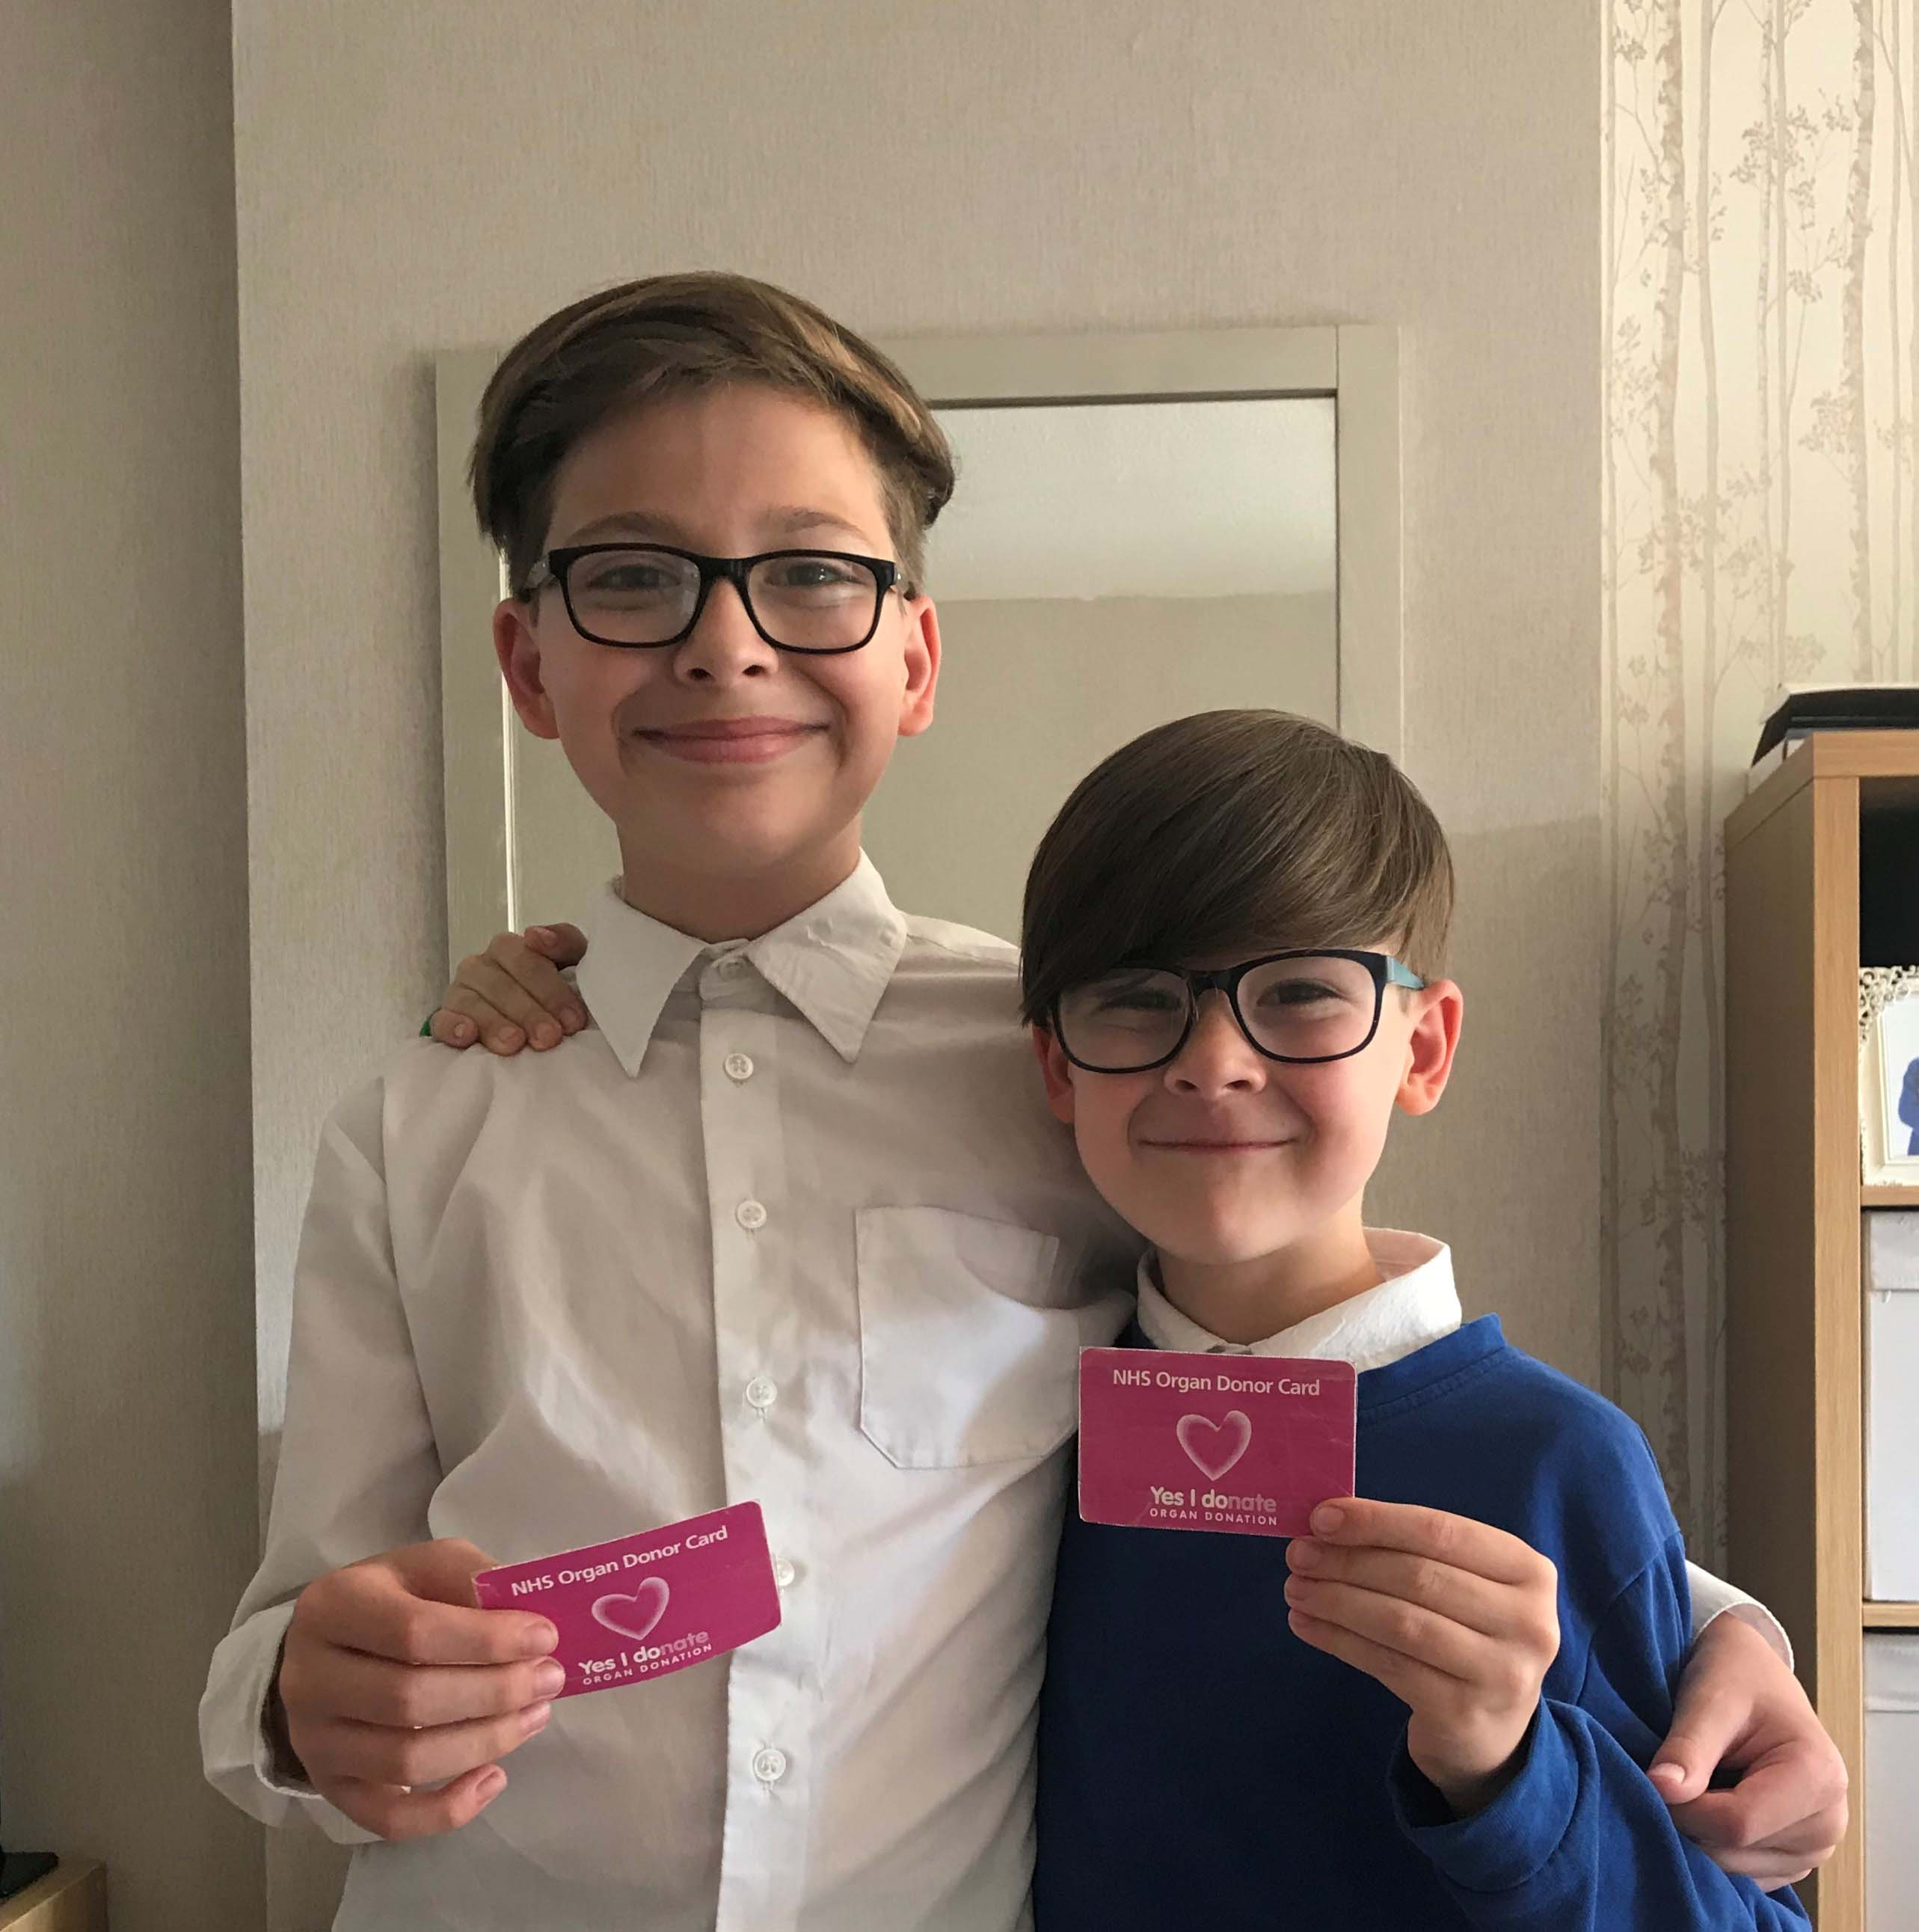 Gemma's sons hold their organ donor cards